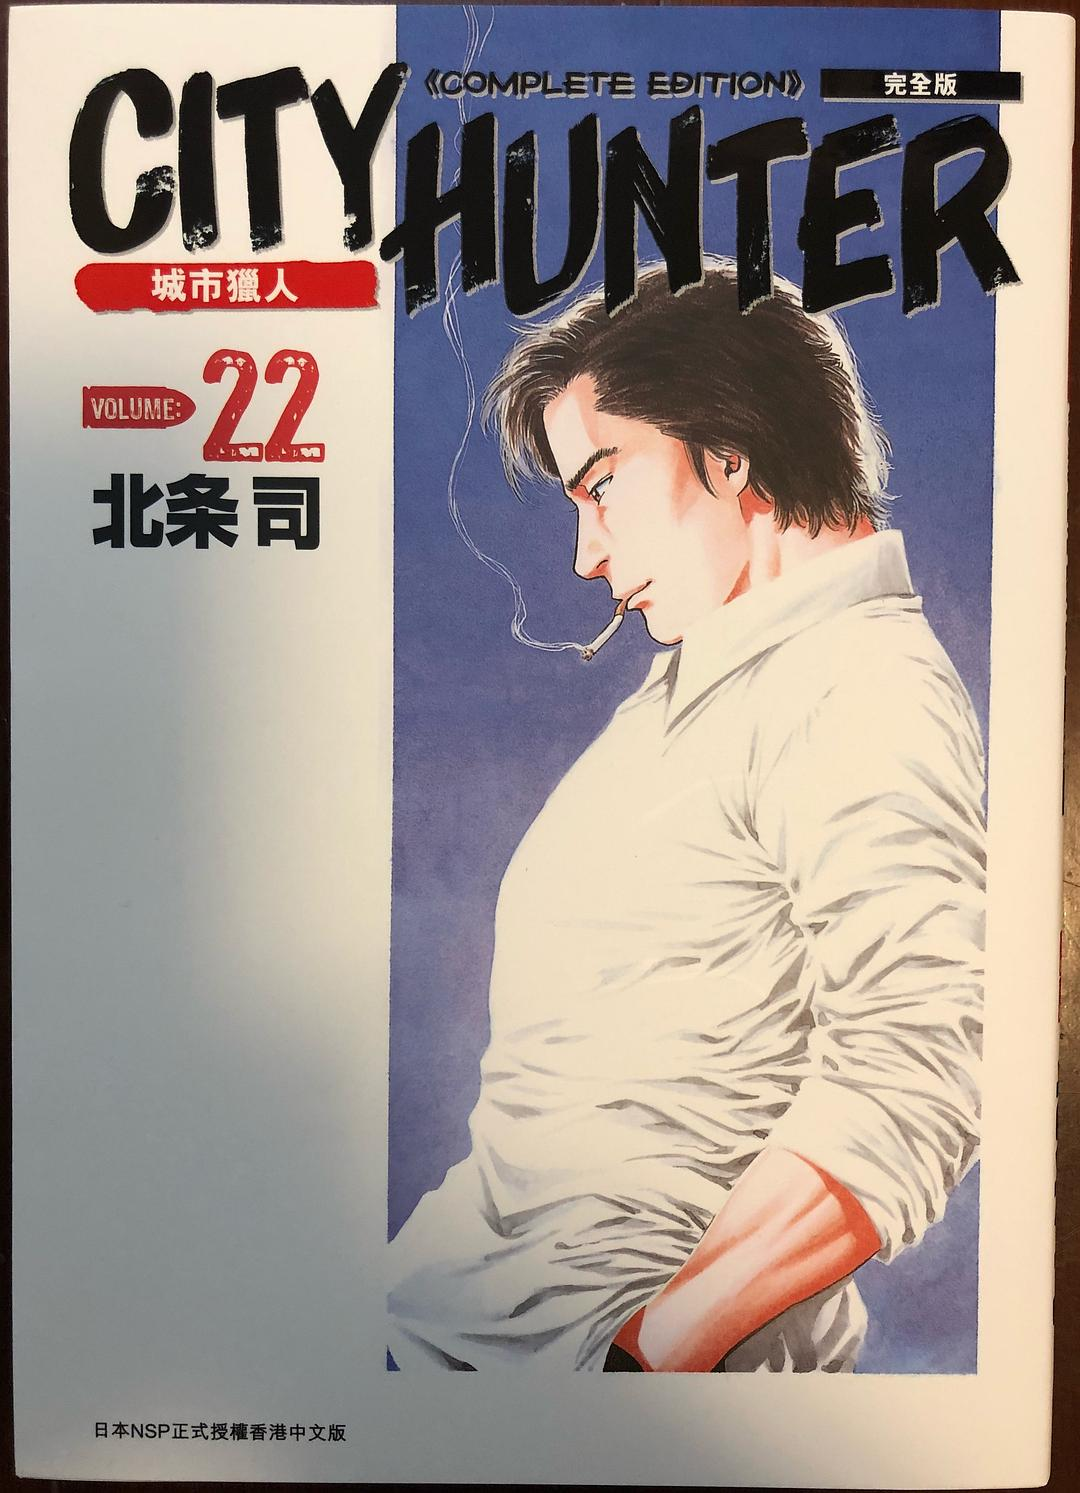 City Hunter 完全版 22